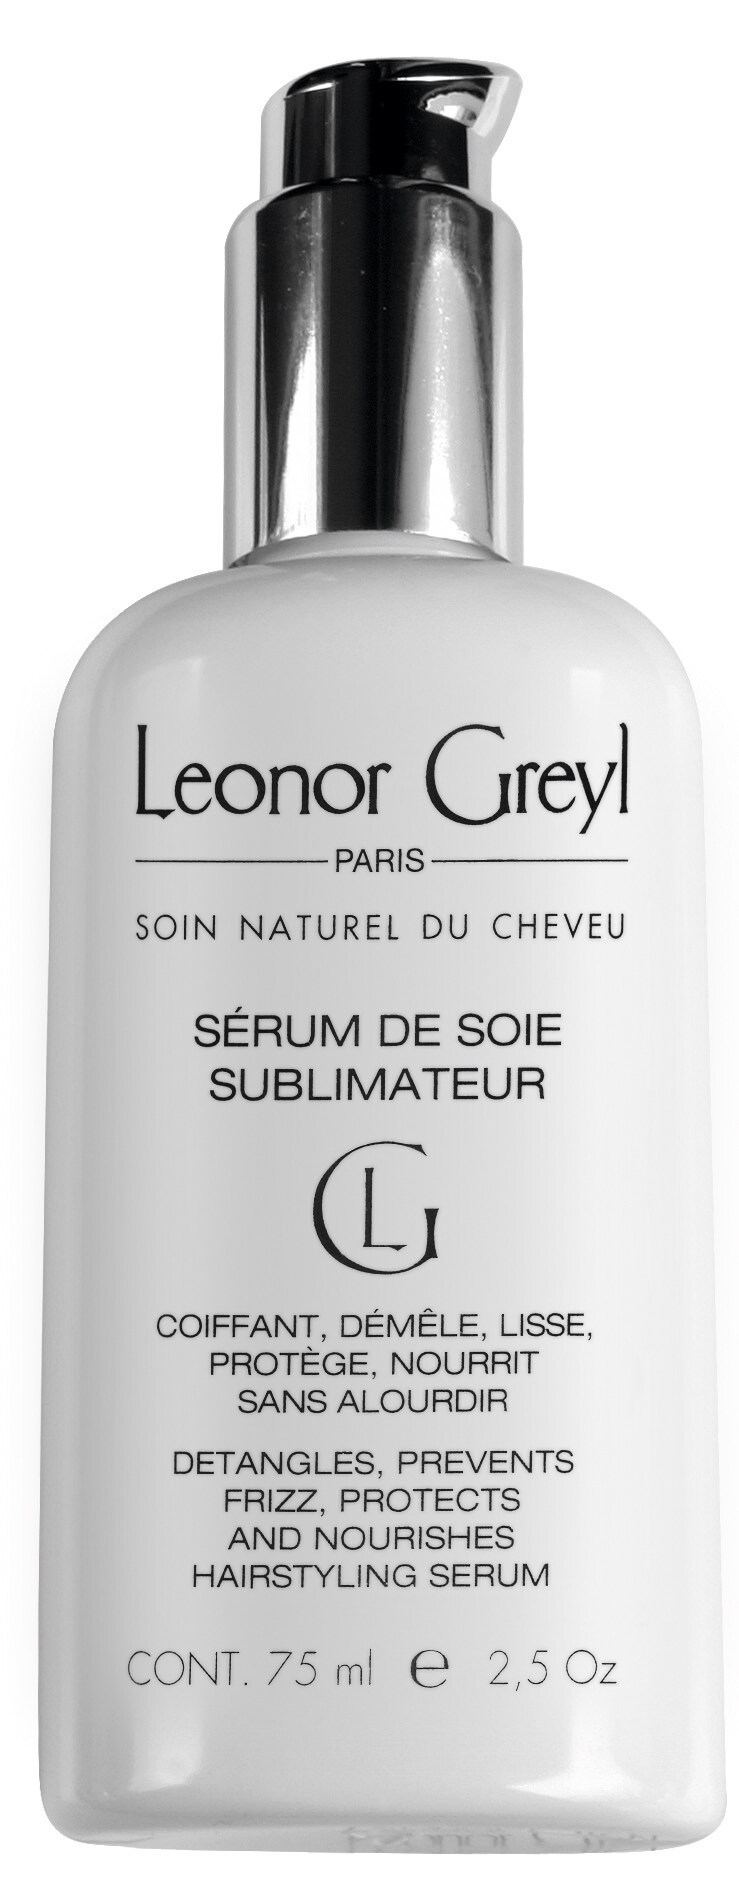 Leonor Greyl Serum De Soie Sublimateur($375)